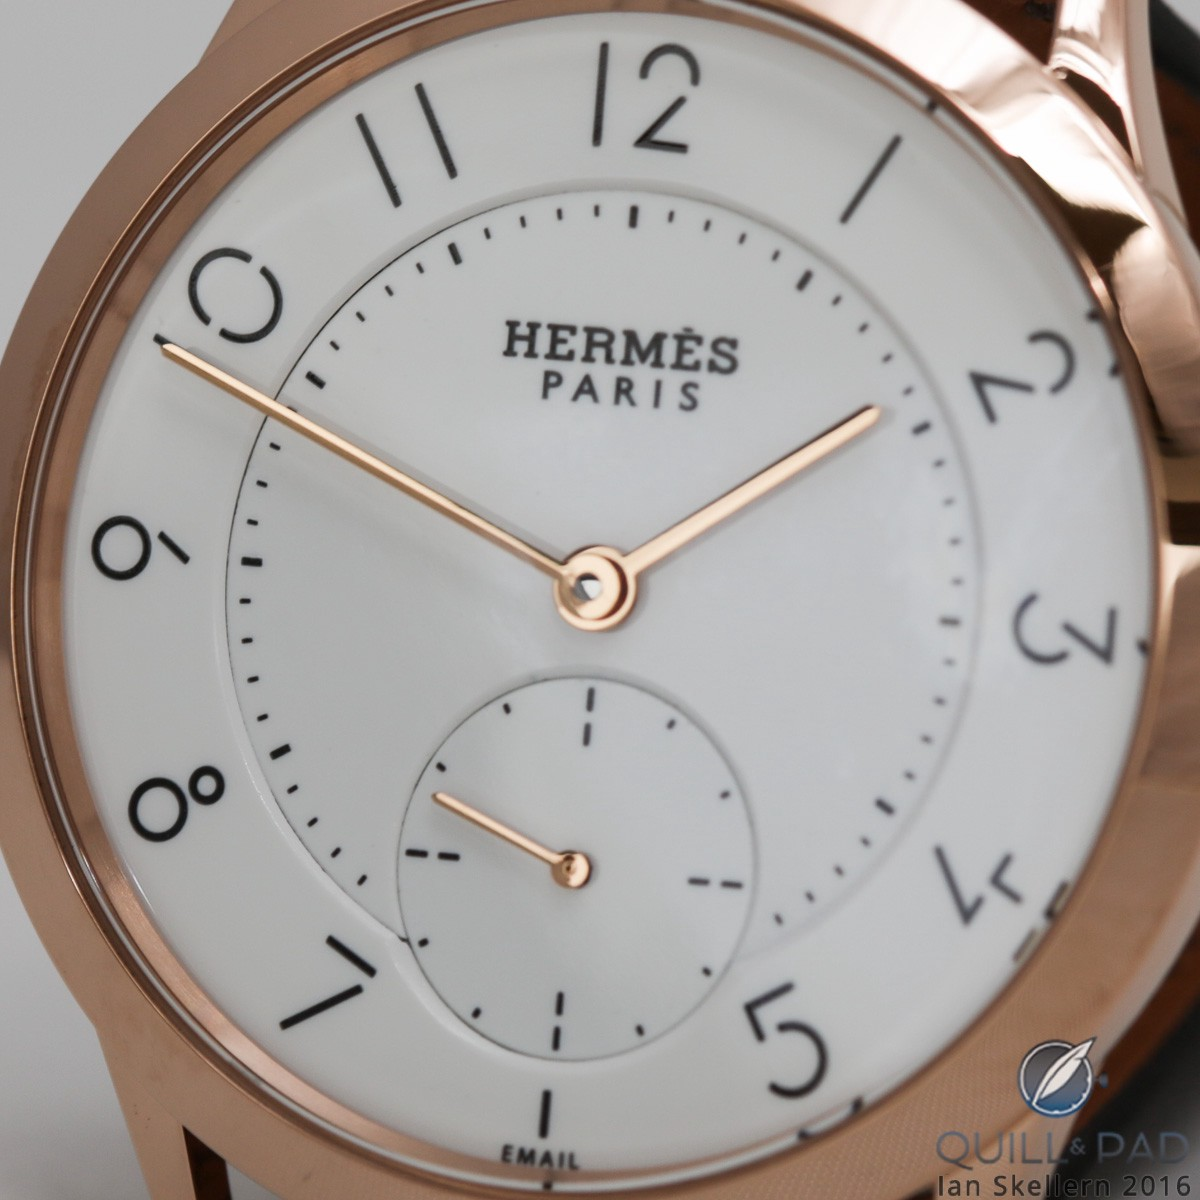 A closer look at the enamel dial of the Slim d'Hermès Email Grand Feu